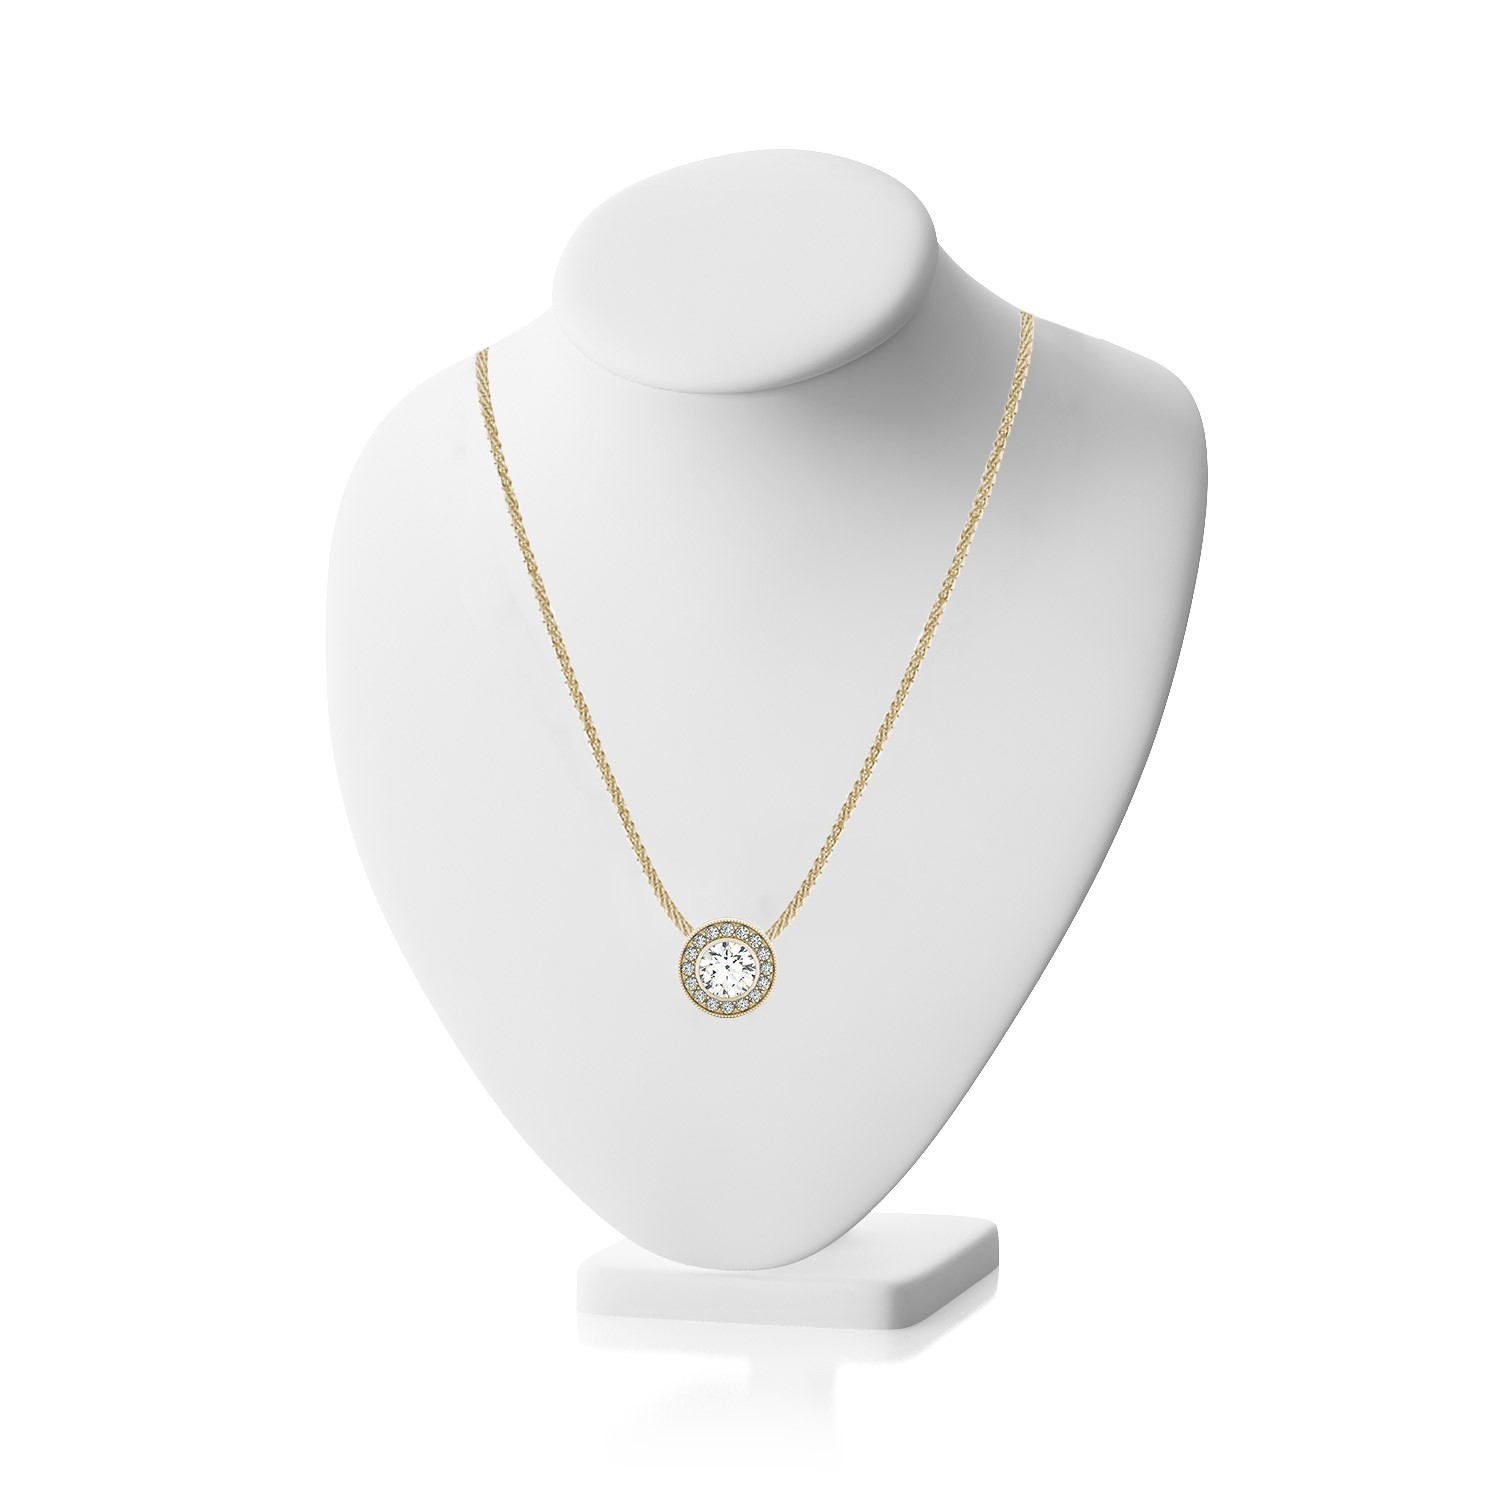 Gia certified 90 ctw anniversary pendant round cut diamond 14k gia certified 90 ctw anniversary pendant round cut diamond 14k white gold wantmydiamond aloadofball Gallery